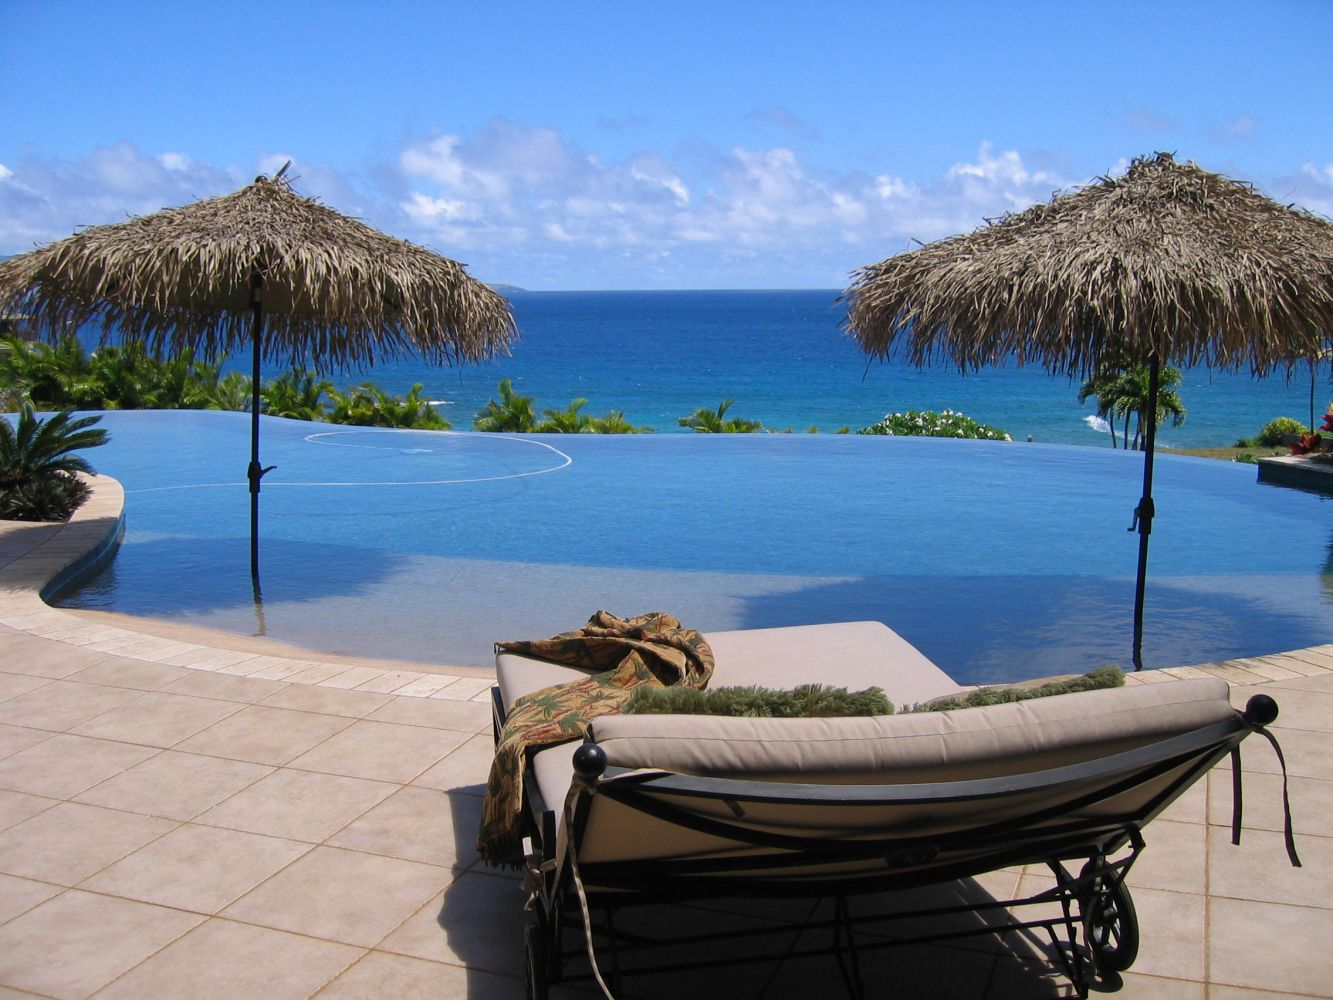 A swimming pool contractor in Maui can build the pool of your dreams